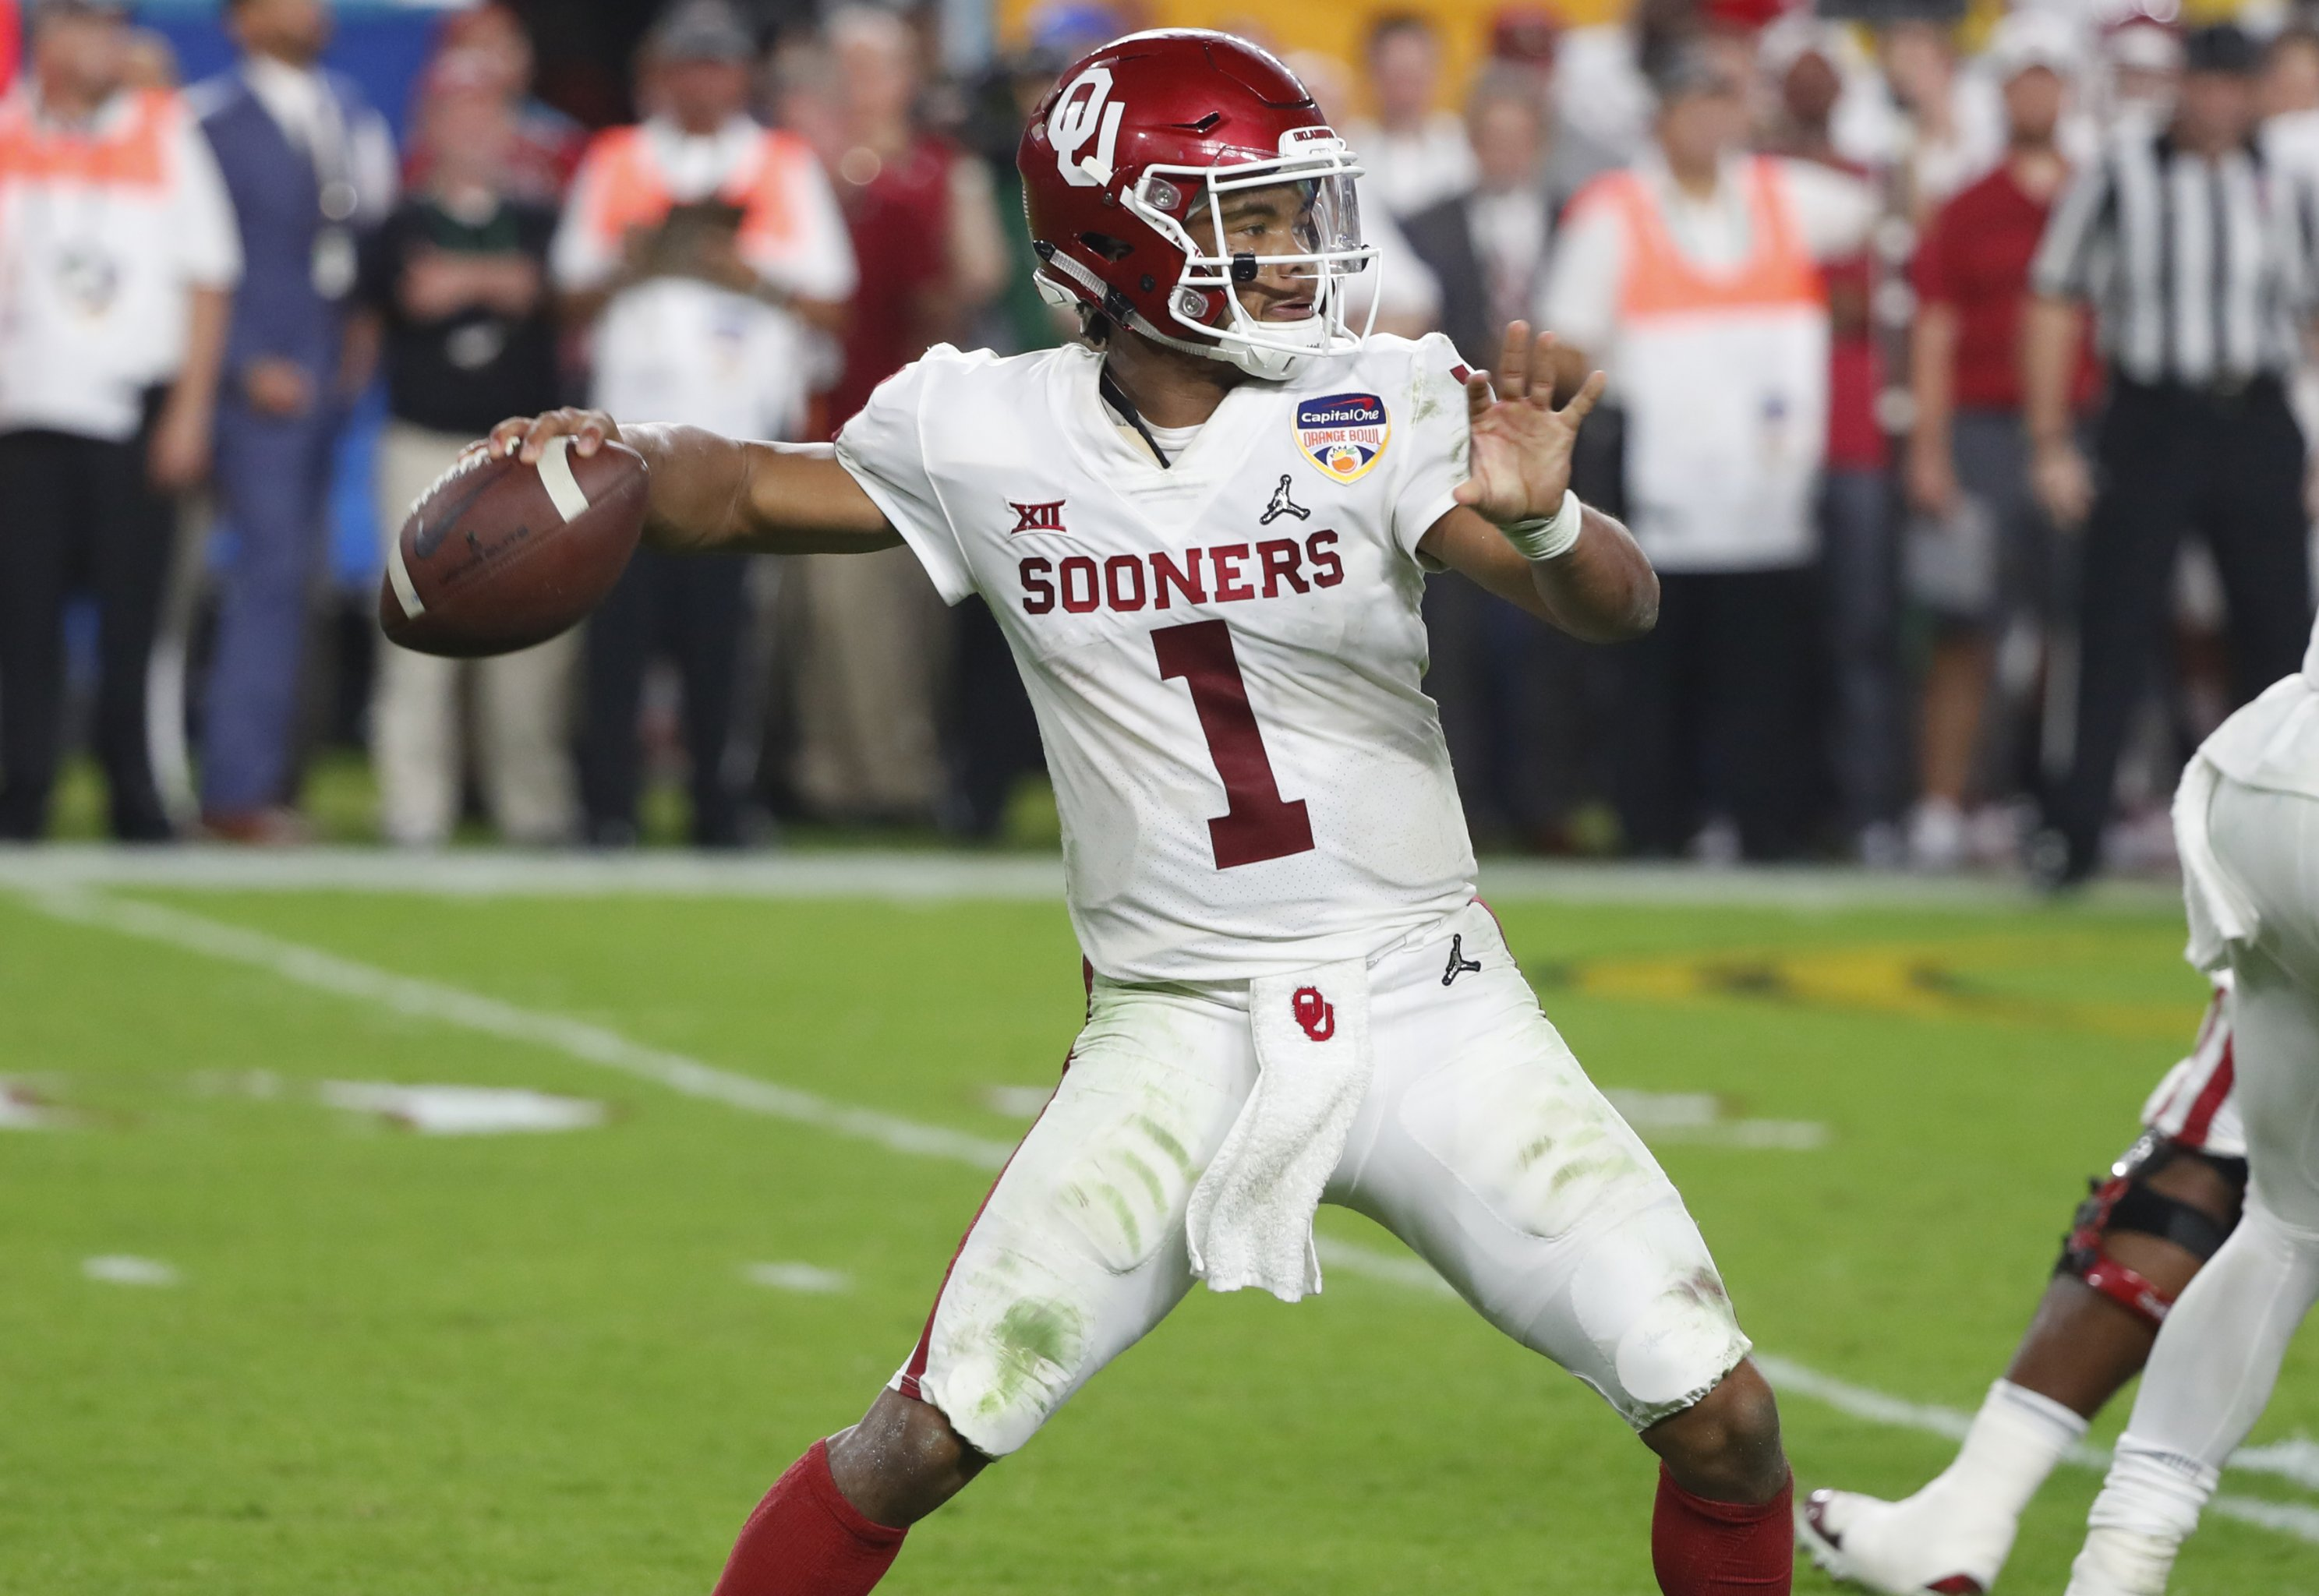 ab2ed1ab 2019 NFL Mock Draft: Latest Picks After Kyler Murray, Underclassmen ...